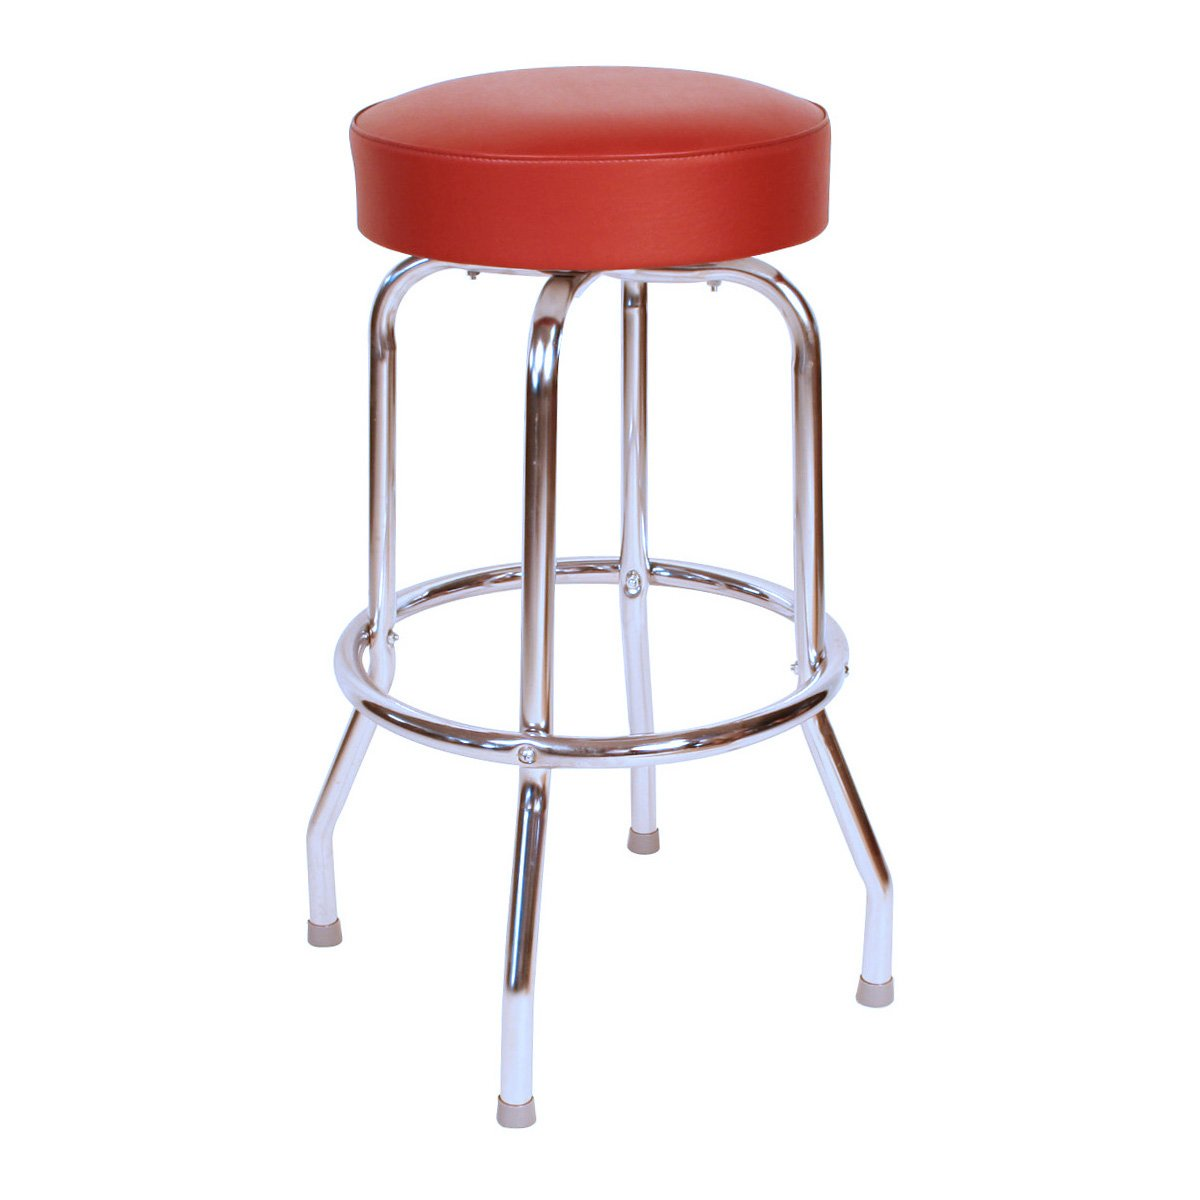 Houzz Bar Stools Collections HomesFeed : a bar chair with red seating feature and no back feature from homesfeed.com size 1200 x 1200 jpeg 67kB